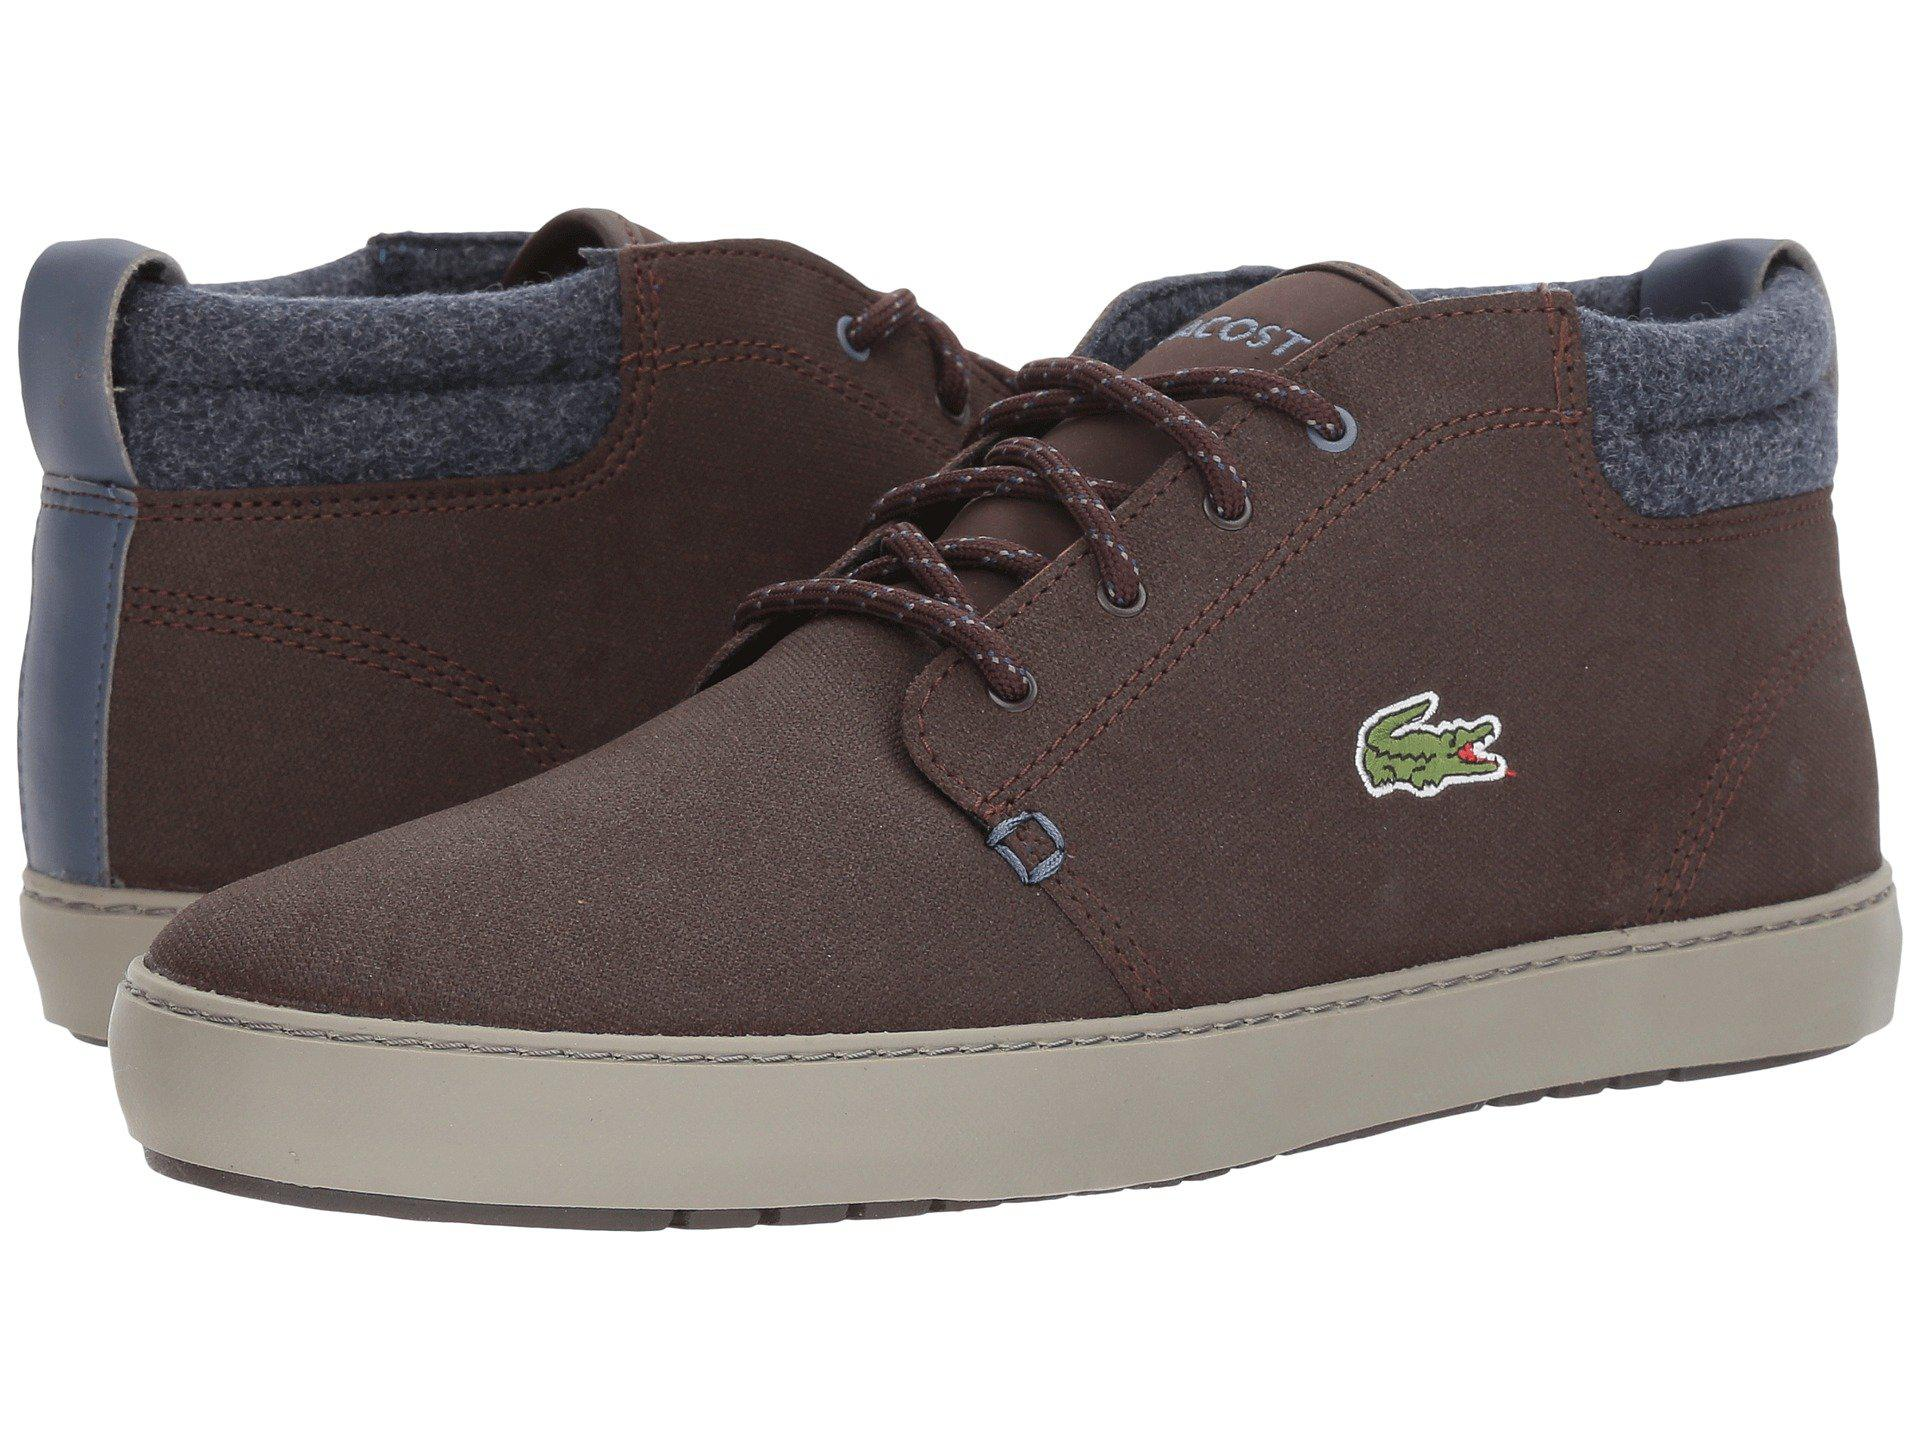 LacosteAMPTHILL - High-top trainers - khaki/tan ExFpv